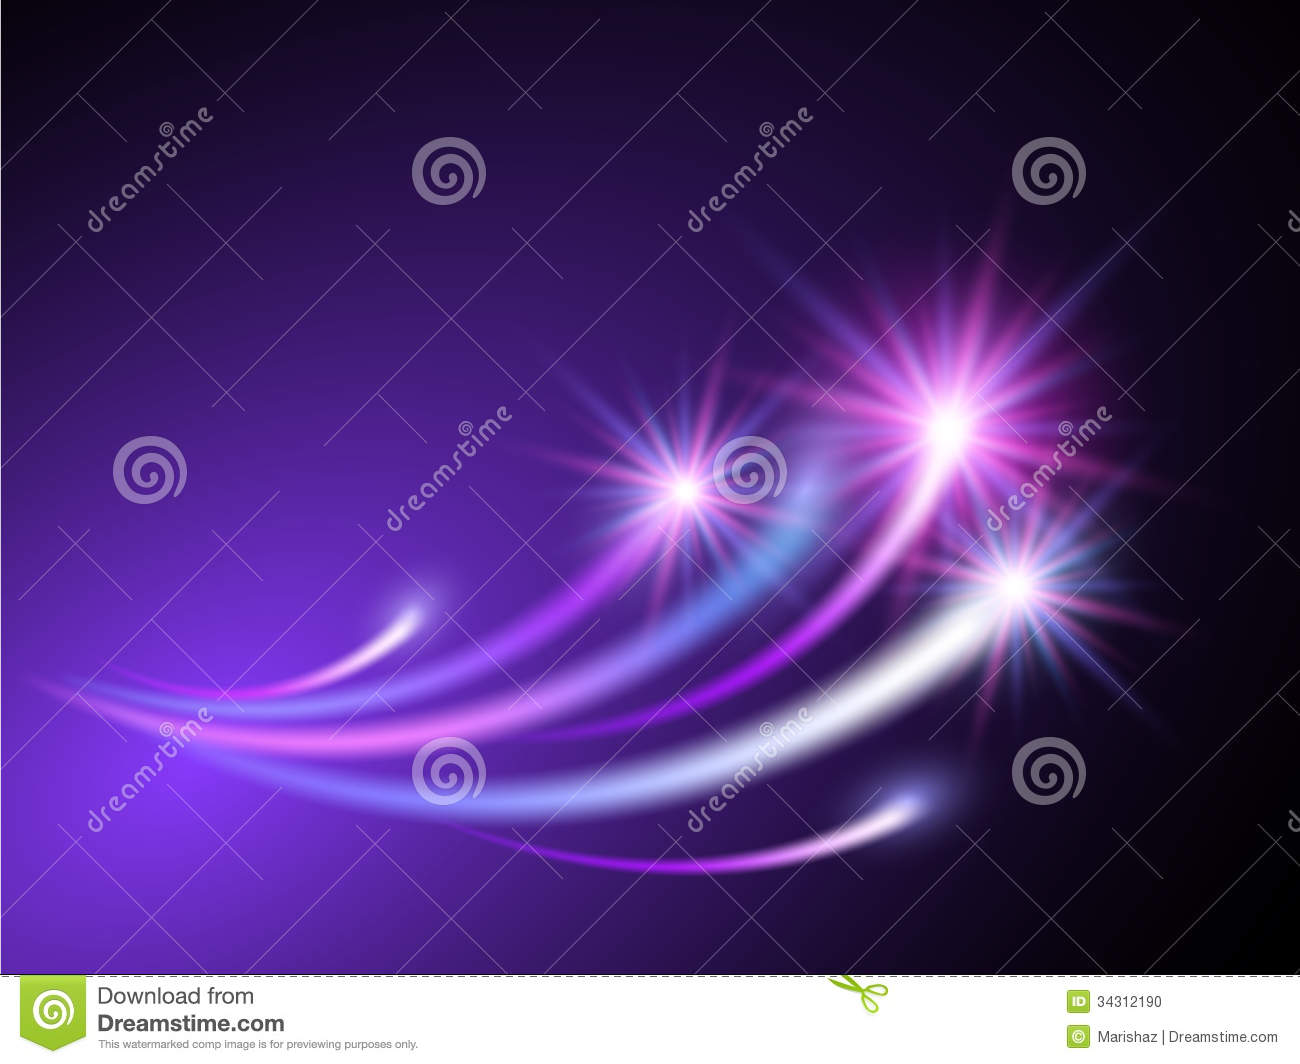 Wallpaper Salute Sky Holiday Colorful 3376x4220: Salute Stock Photo